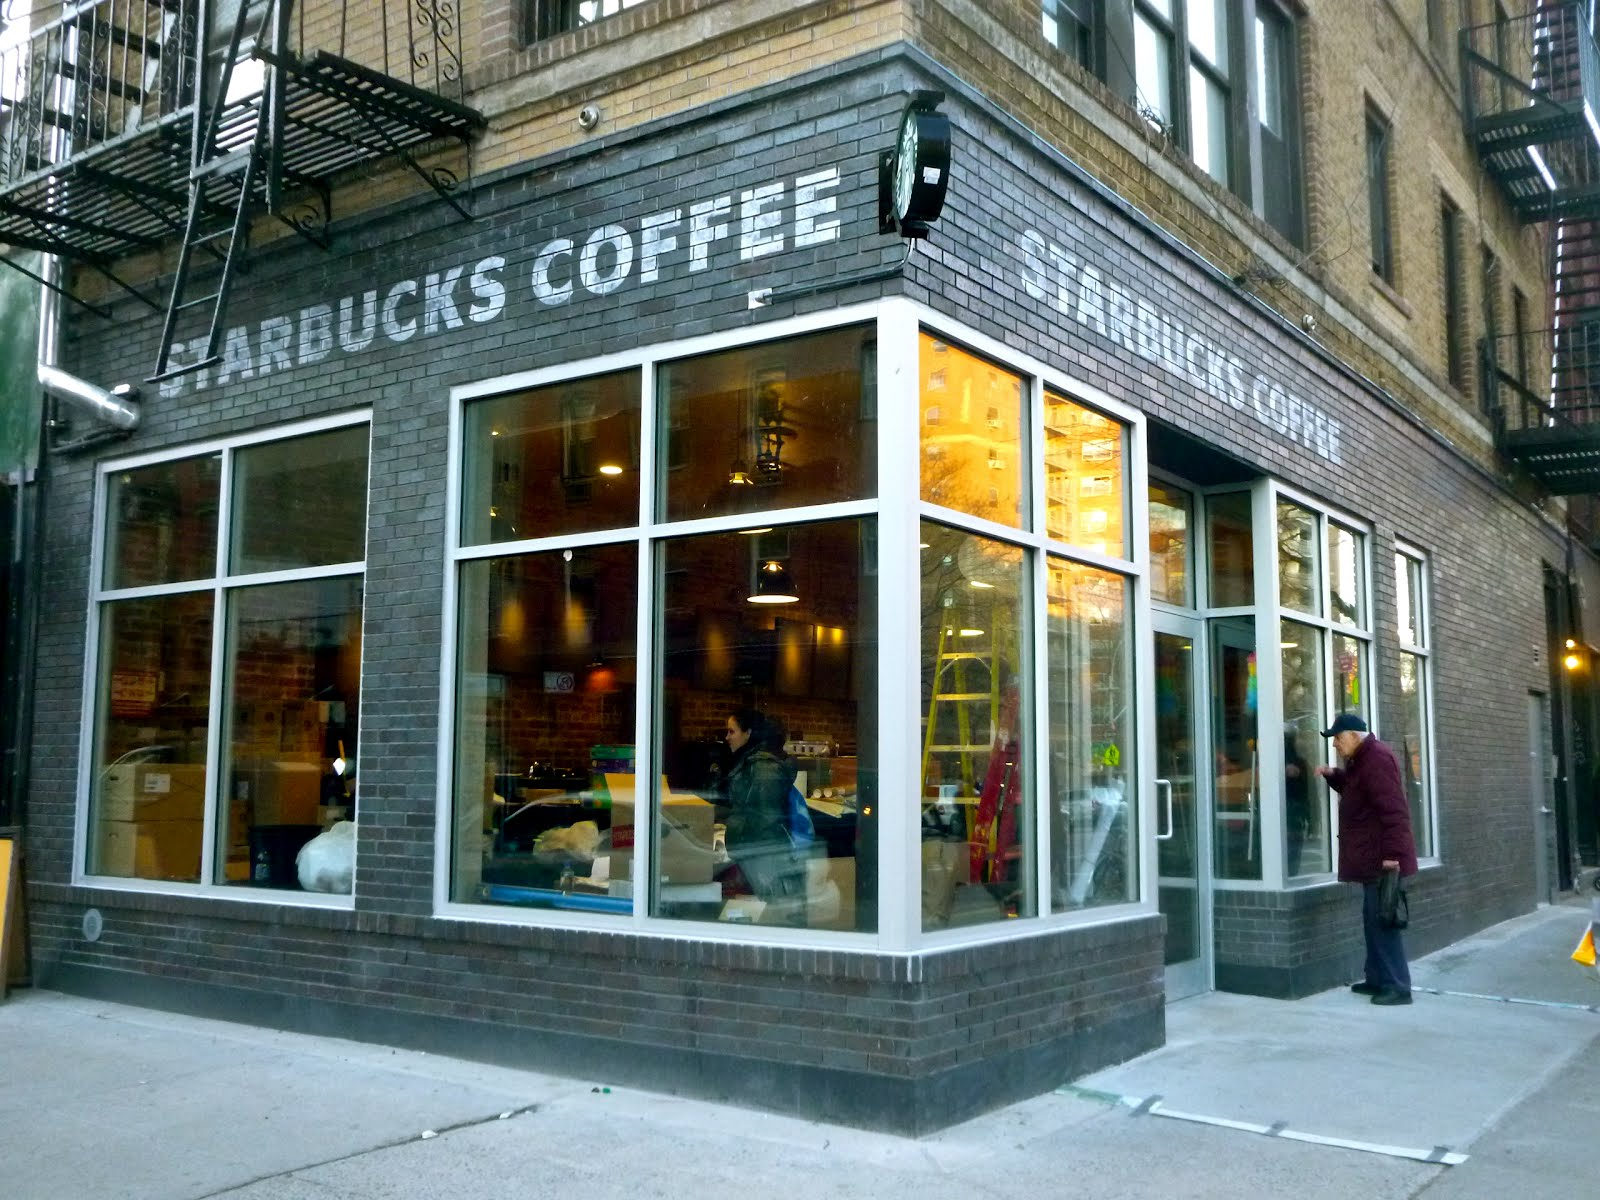 Jeremiah S Vanishing New York Little Rickie Vs Starbucks